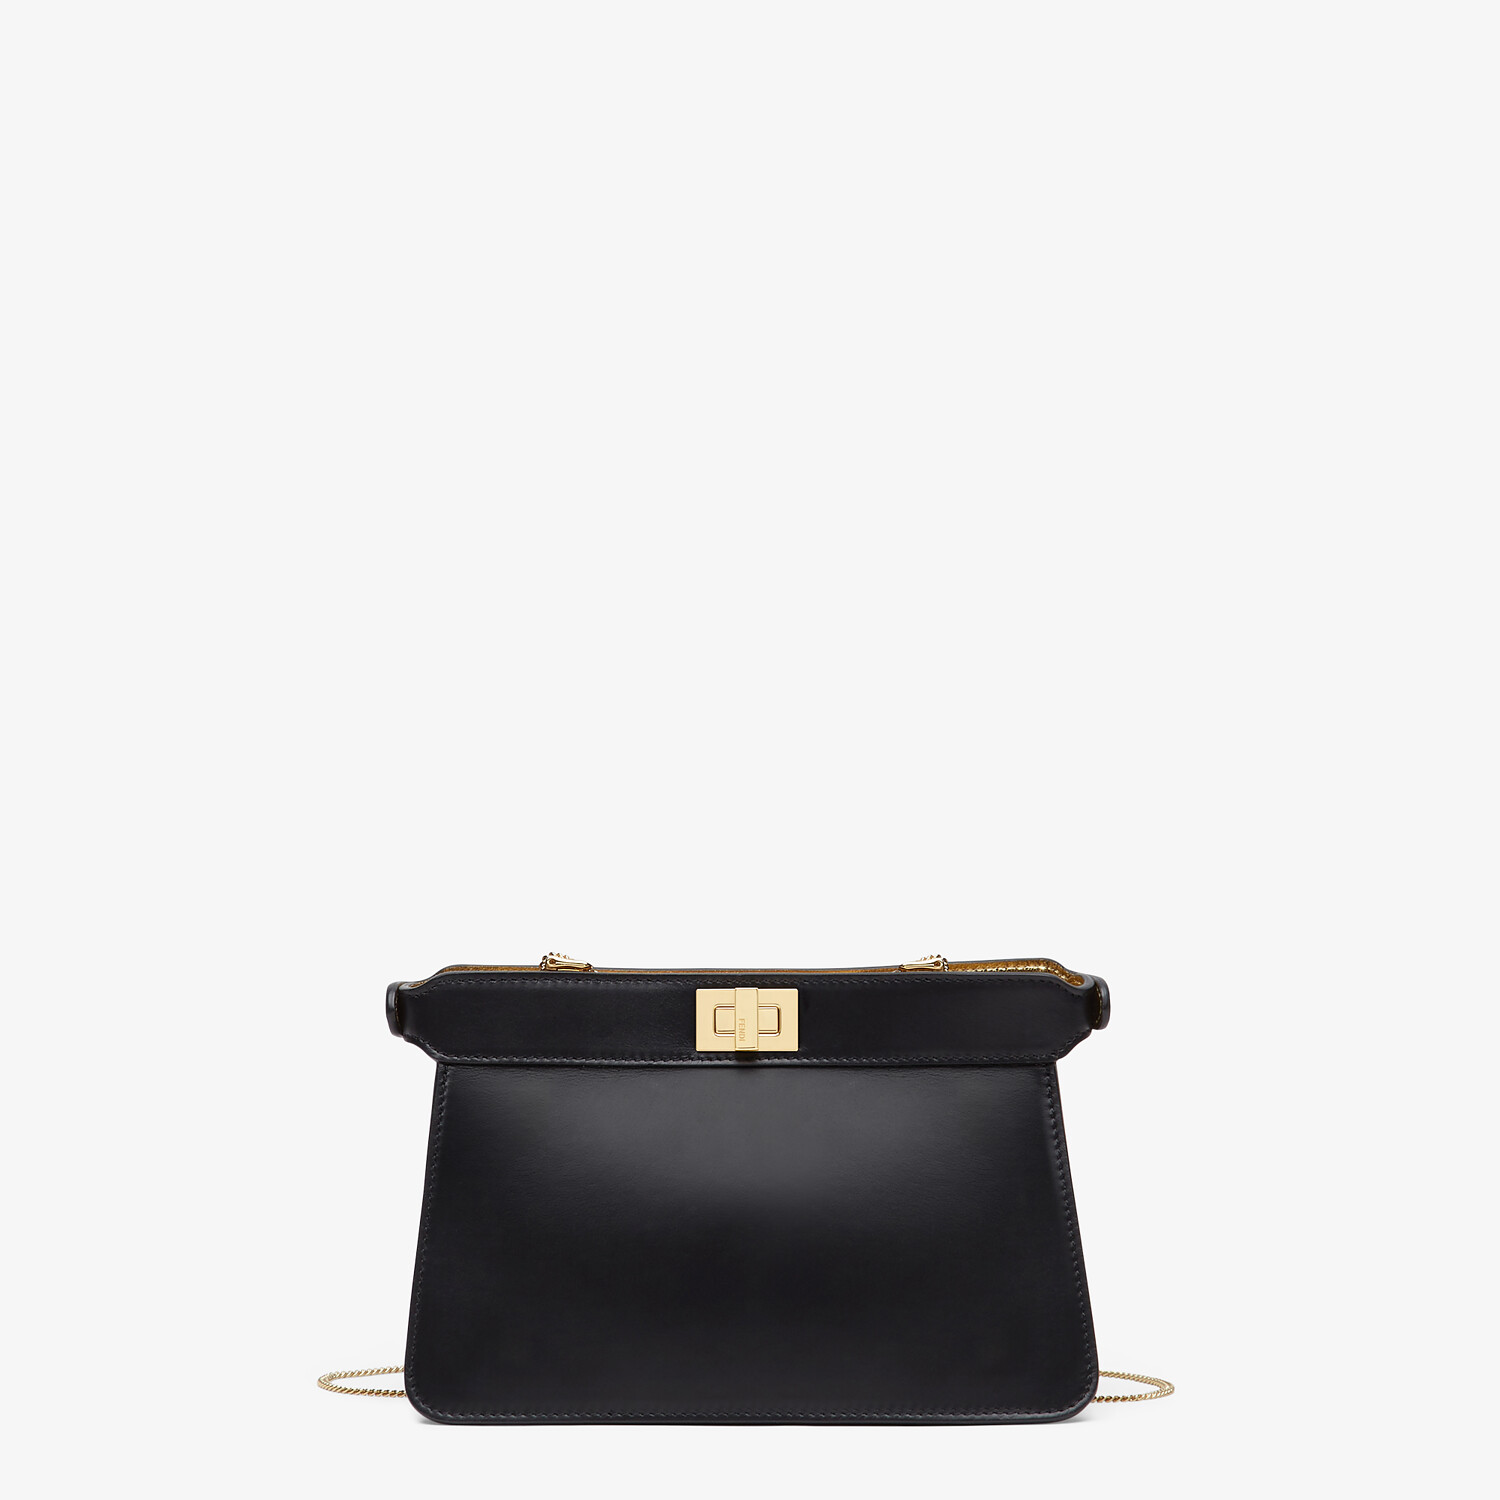 FENDI PEEKABOO I SEE U POCHETTE - Black nappa leather bag - view 3 detail